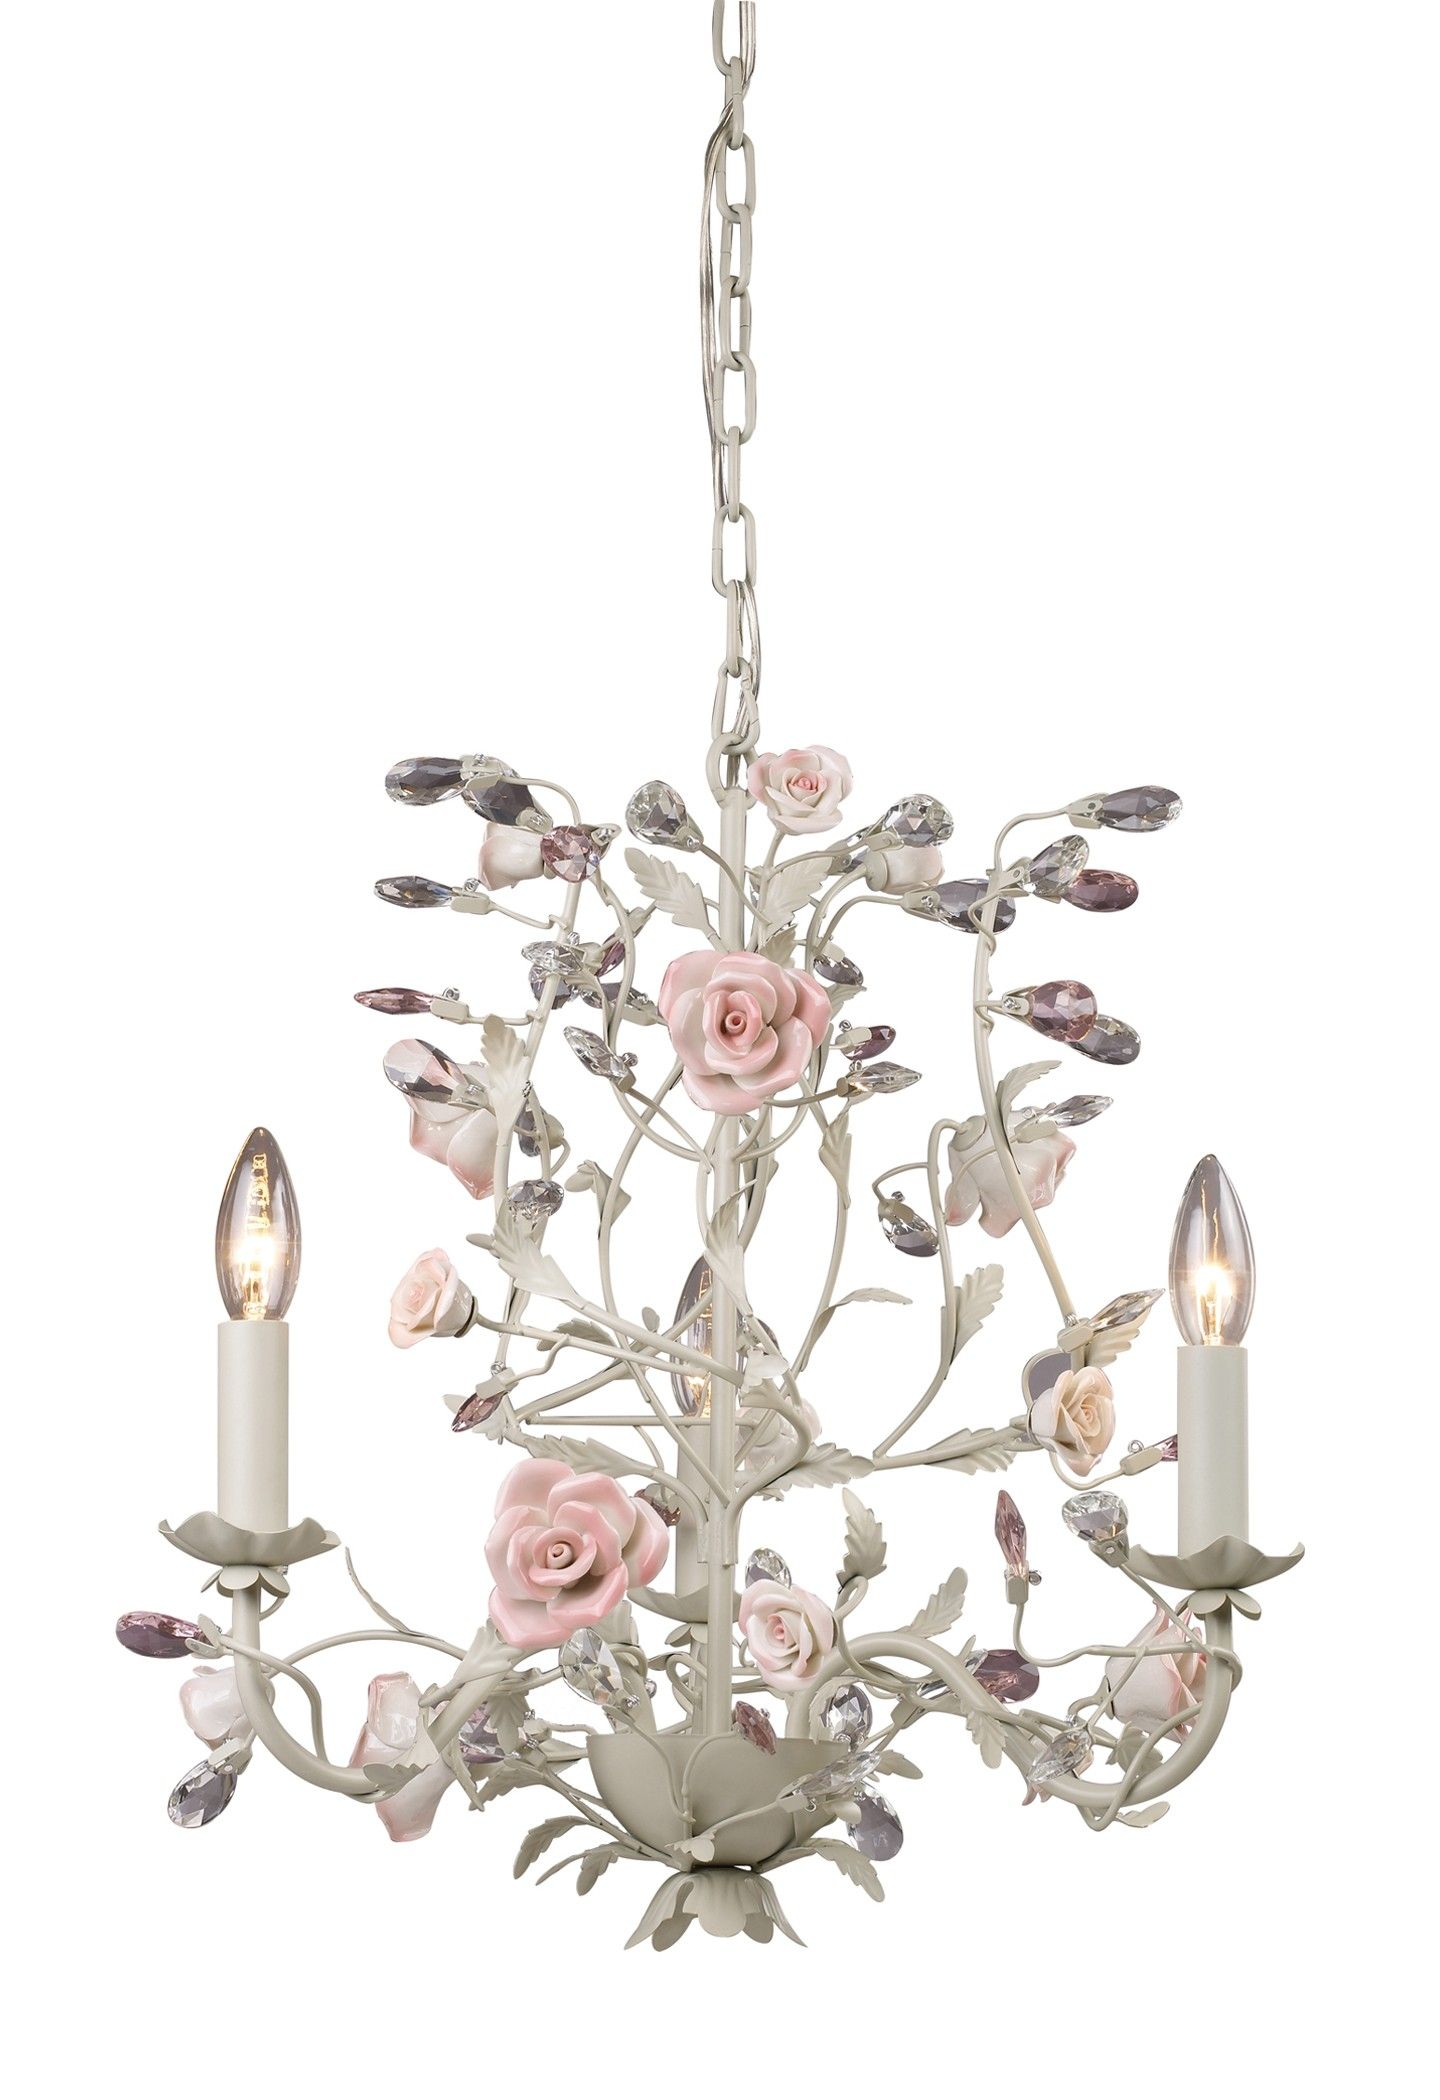 Small Crystal Chandeliers For Bedrooms Light Flower Chandelier Would Love This For My Office